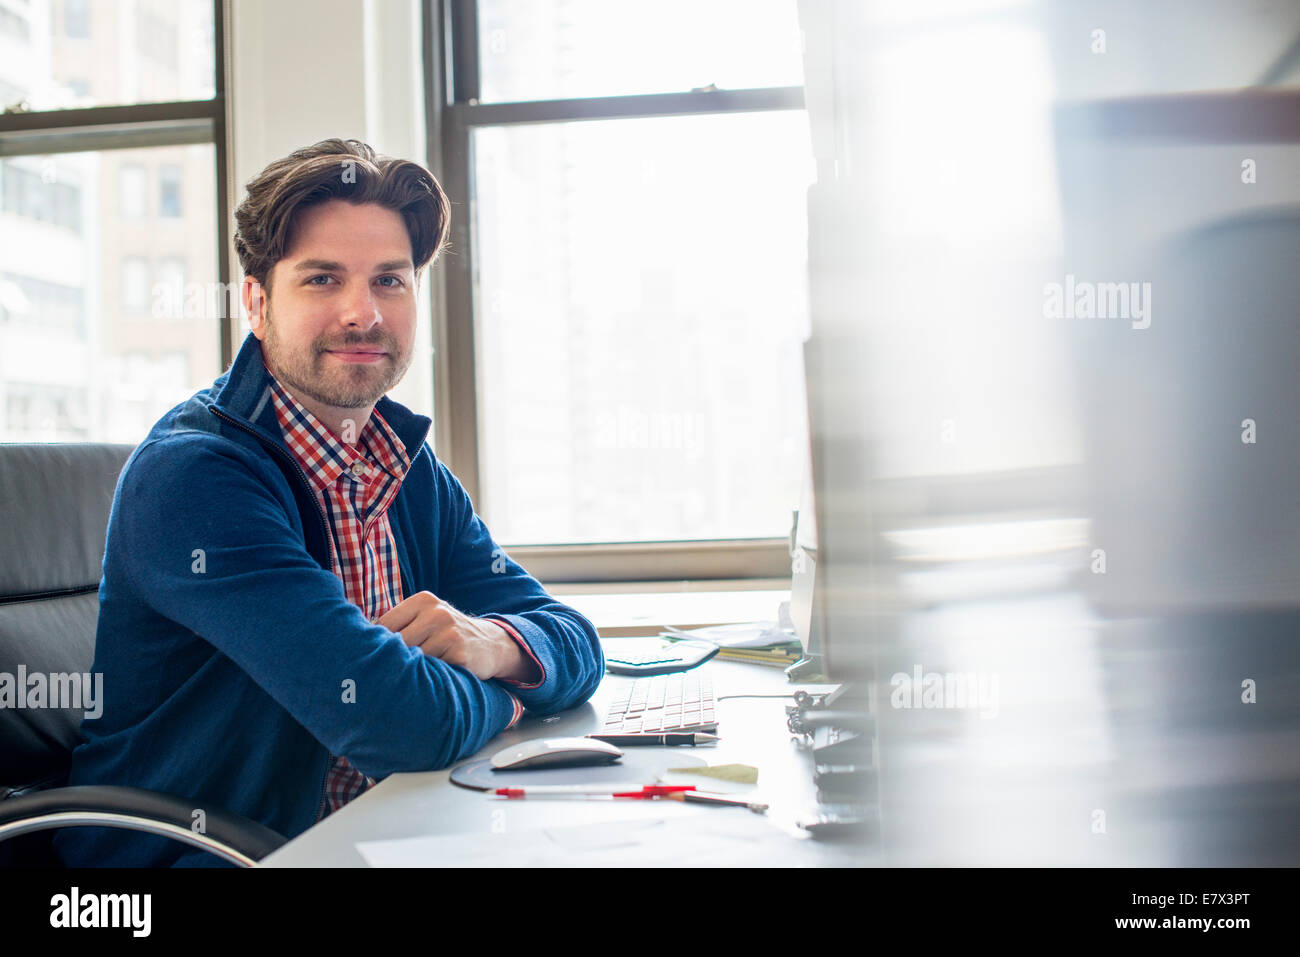 Office life. A man seated with his arms folded at a cluttered desk. - Stock Image